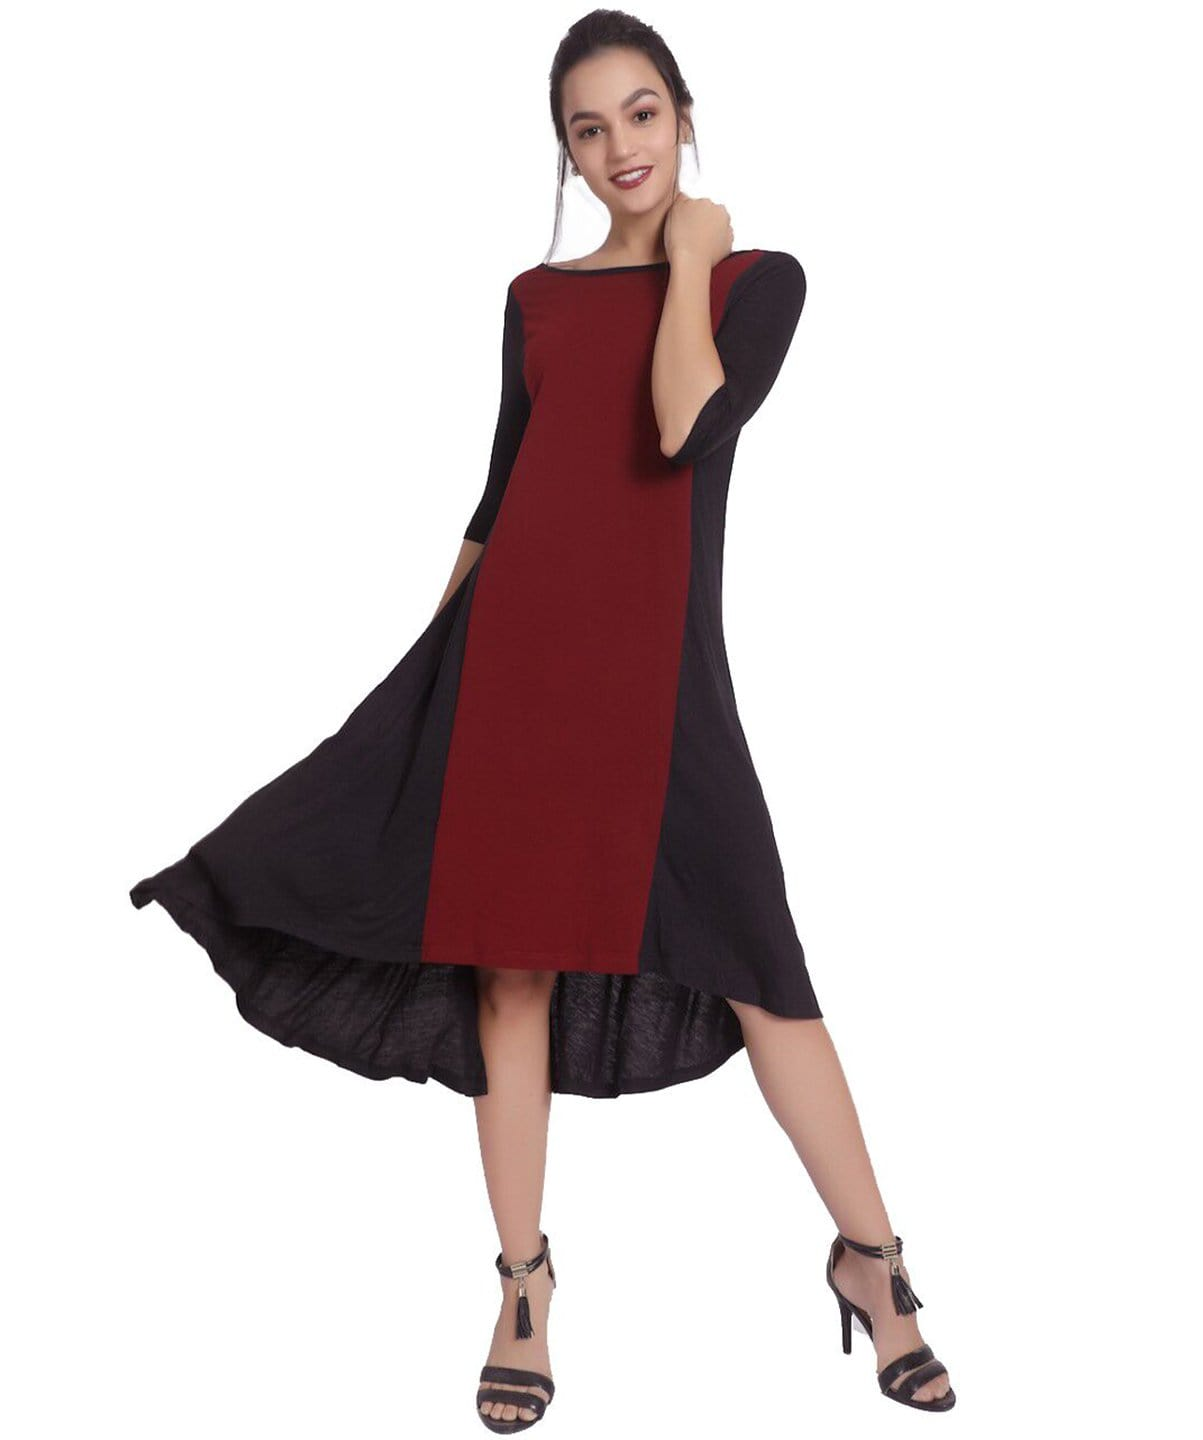 Uptownie Plus Solid Wine & Black Knitted Dress - Uptownie